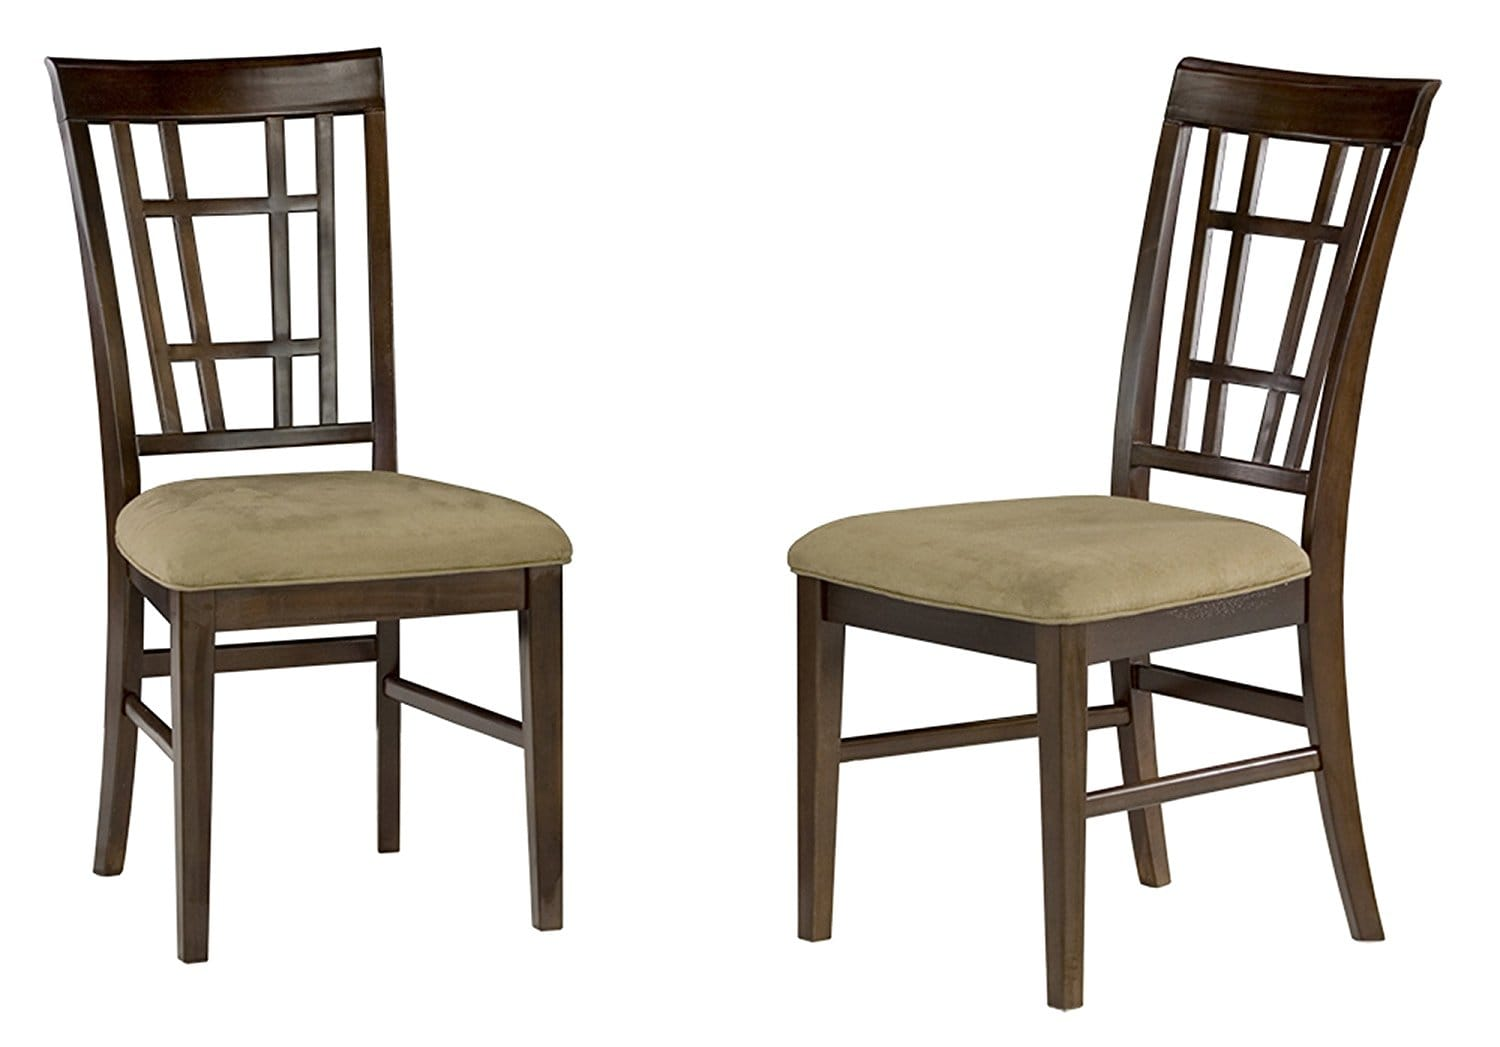 Montego Bay Dining Chairs Antique Walnut W/Cappuccino Cushion Seat By  Atlantic Furniture